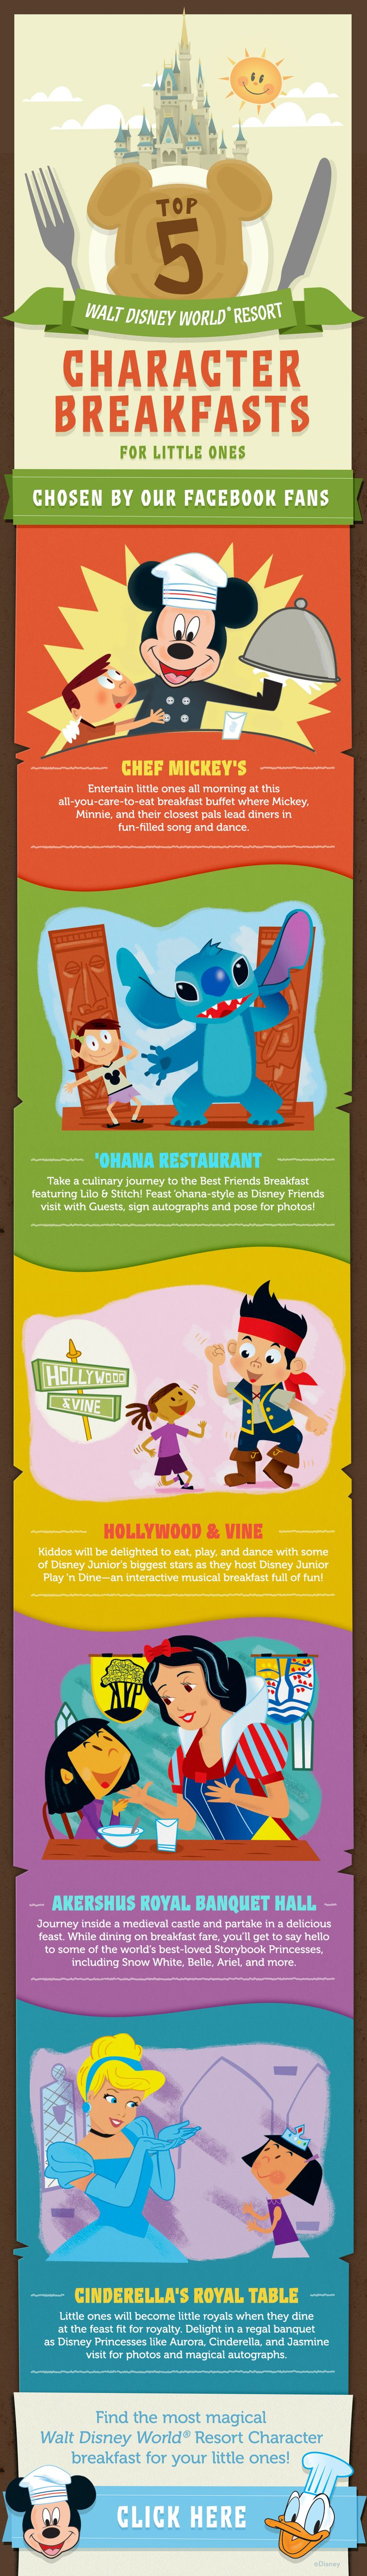 Top 5 Character Breakfasts for little ones at Walt Disney World! #vacation #tips #tricks #DisneyKids